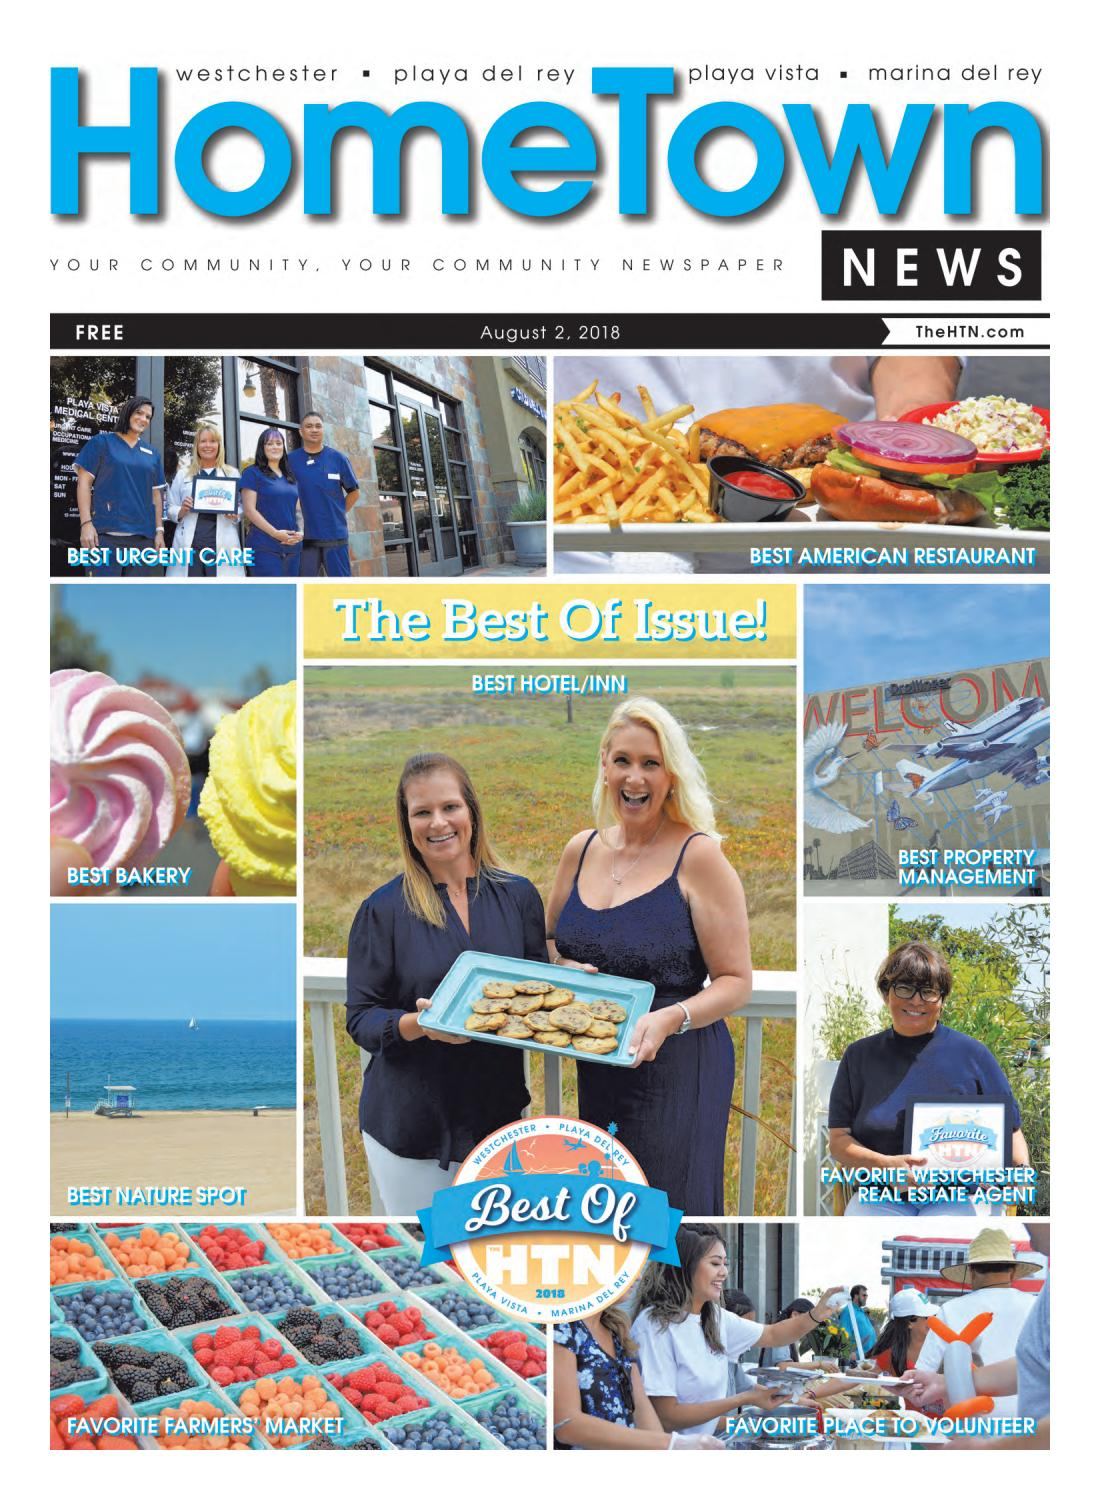 Cucina Trattoria Marina Del Rey Westchester Playa Hometown News August 2018 Edition